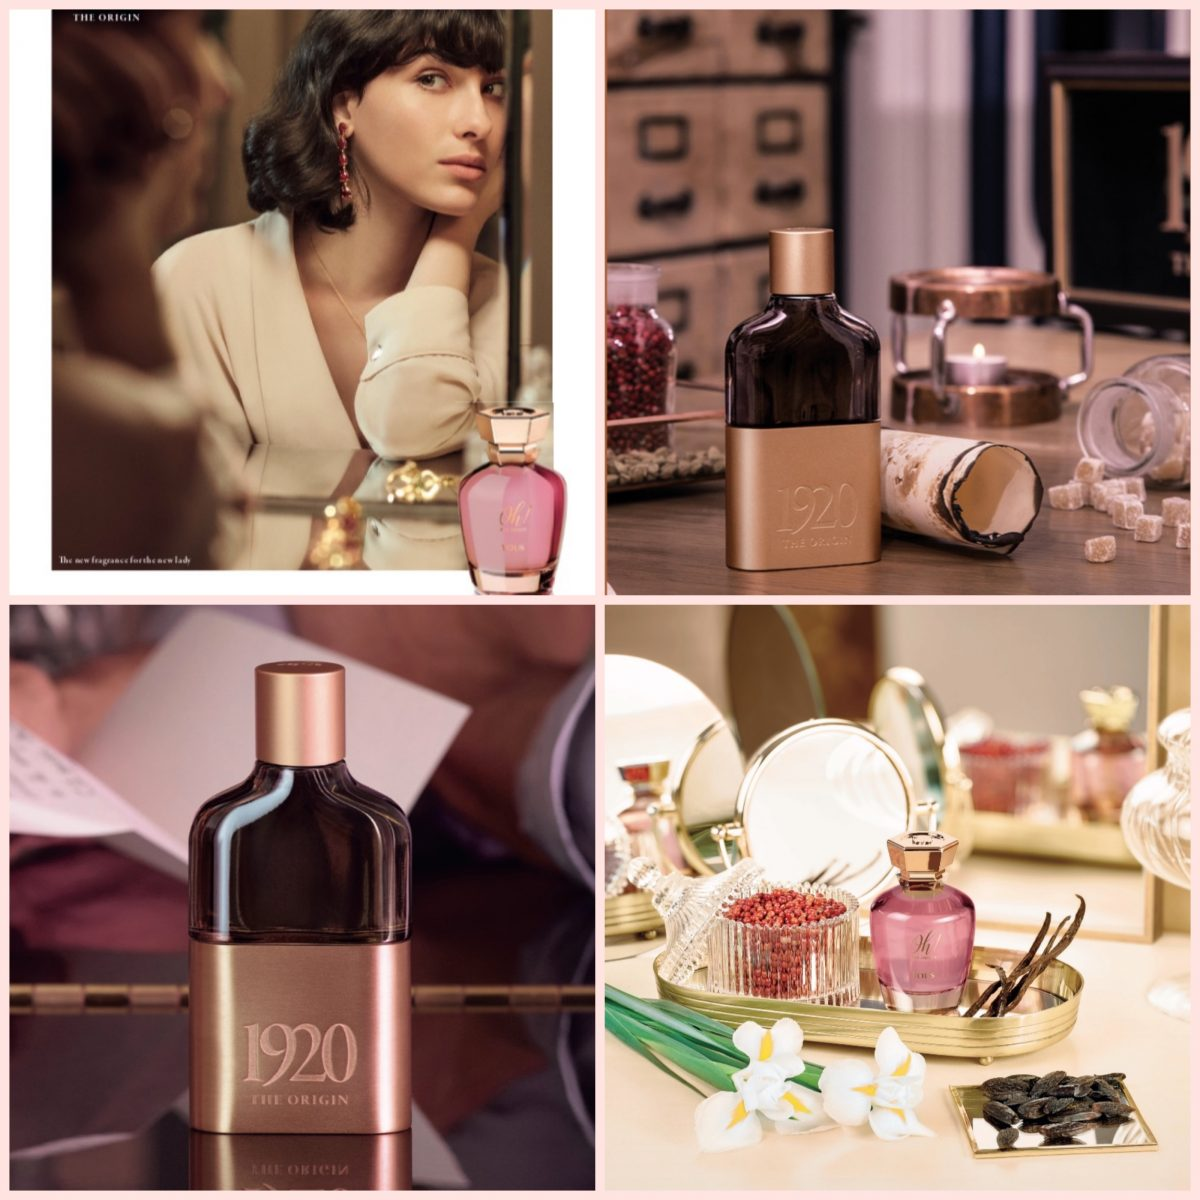 """TOUS's """"The Origin"""" Fragrance Collection is Roaring with 1920s Glamour"""